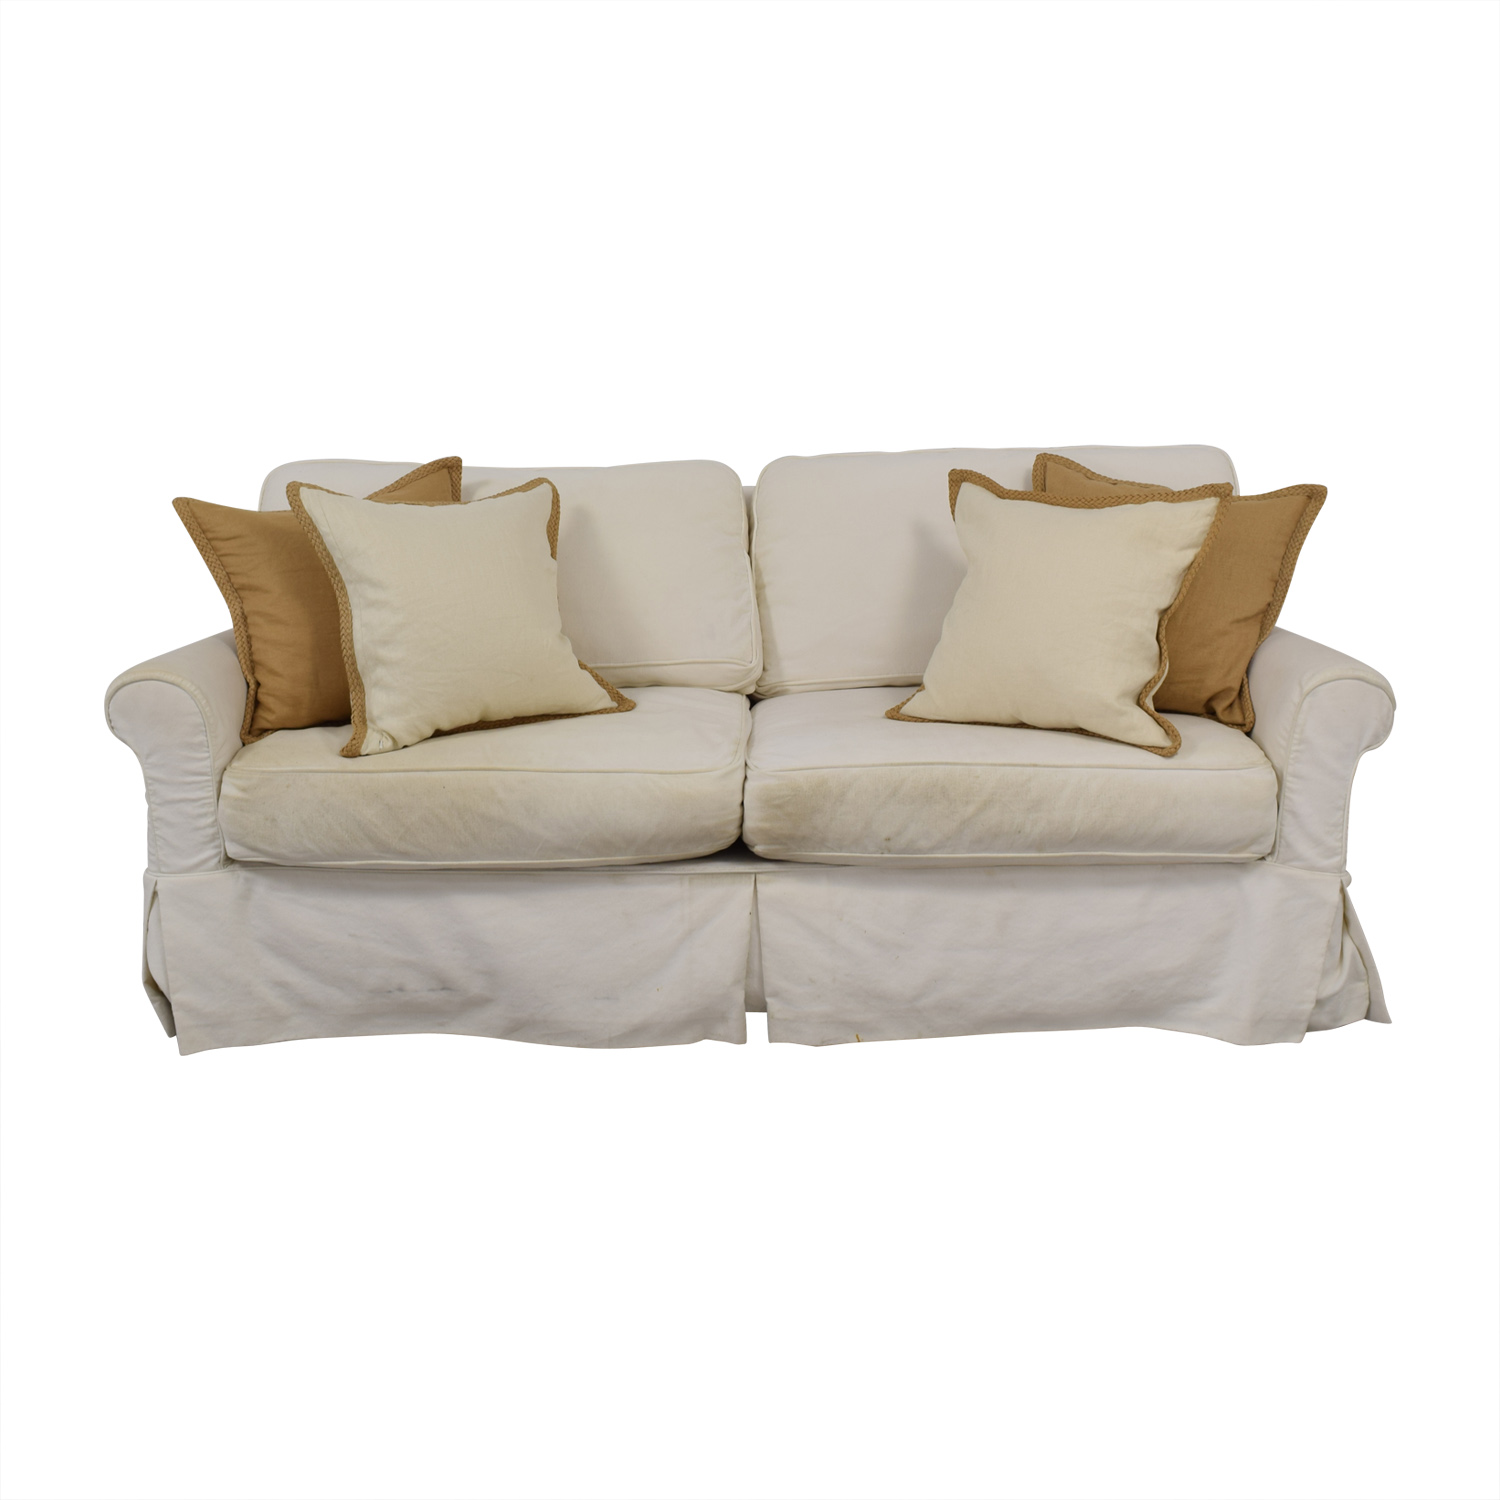 shop Crate & Barrel Montclair Sofa Crate & Barrel Sofas